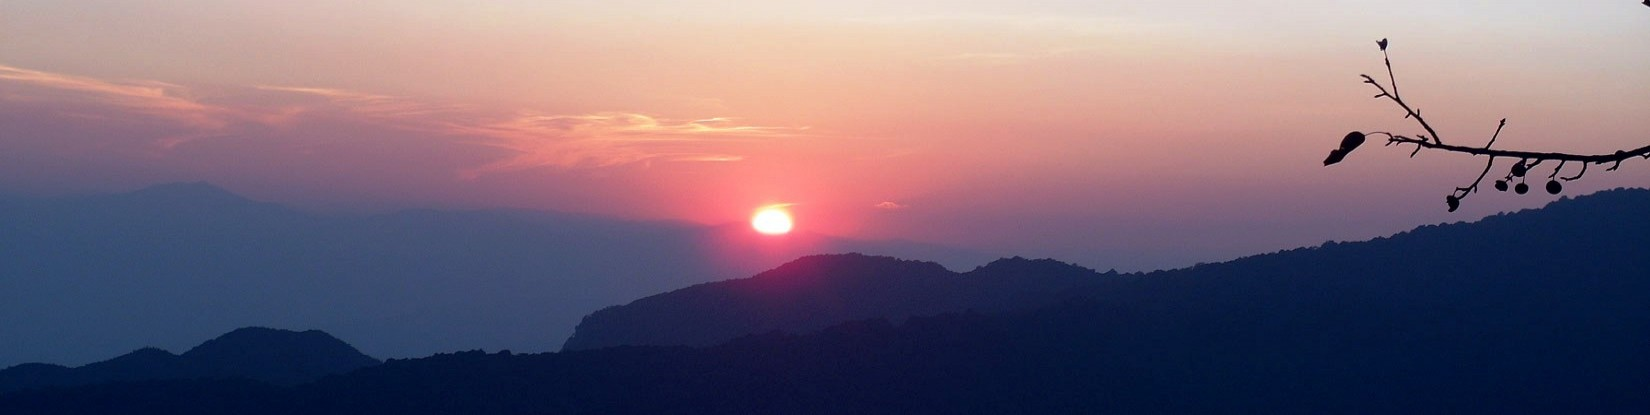 Stunning sunset caught from Nagarkot